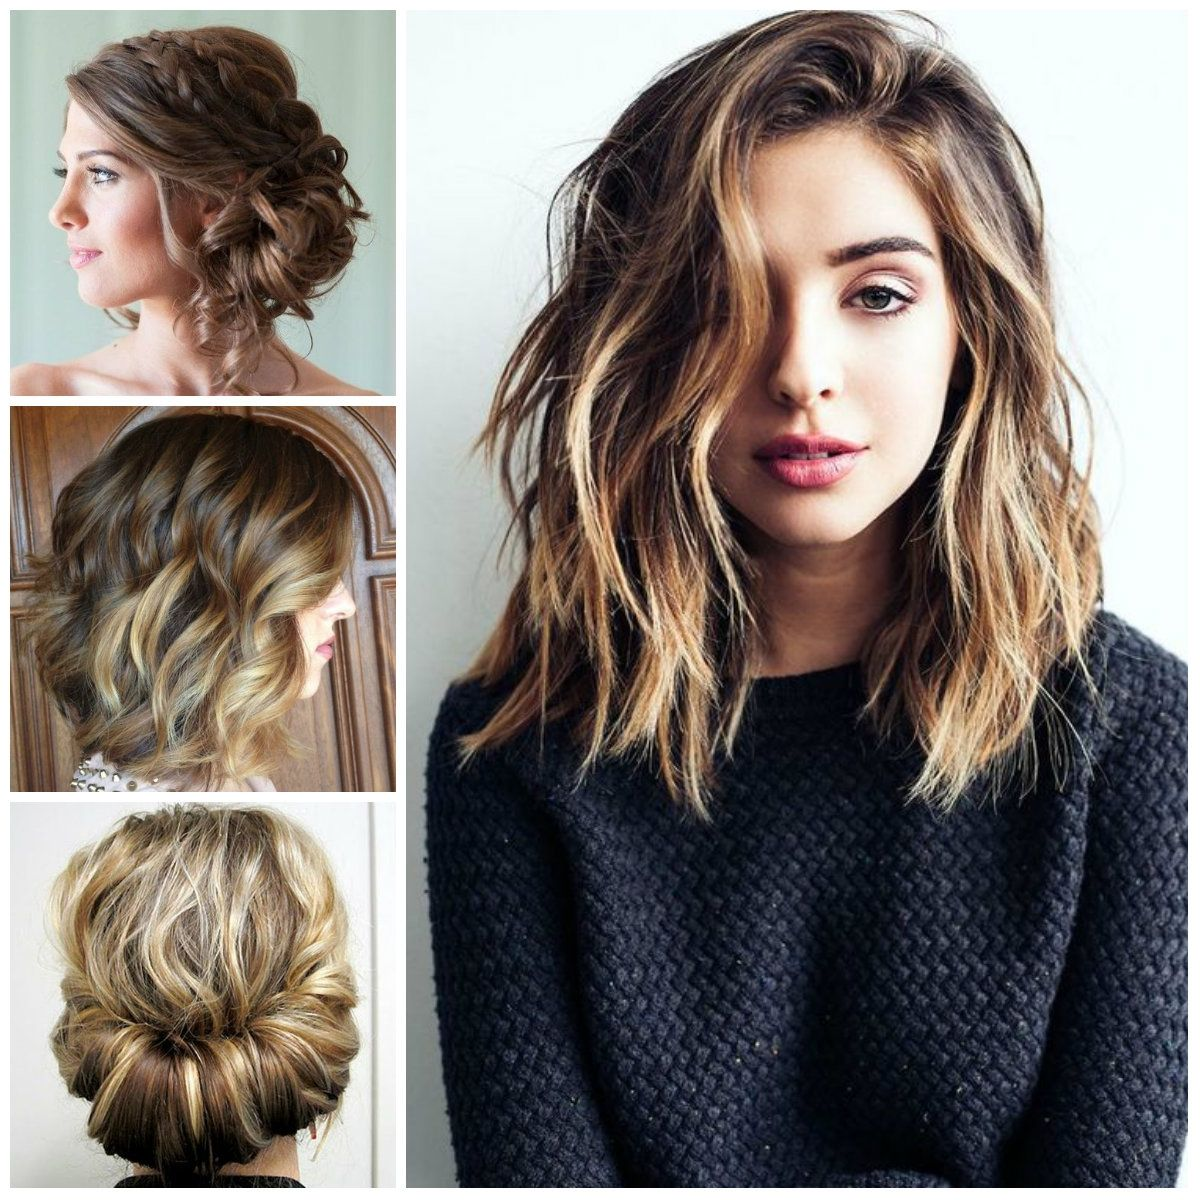 New Hairstyle Medium Length Curly Hairstyles Hairstyles New Haircuts And Hair 2017 Medium Curly Hair Styles Hair Styles Curled Hairstyles For Medium Hair